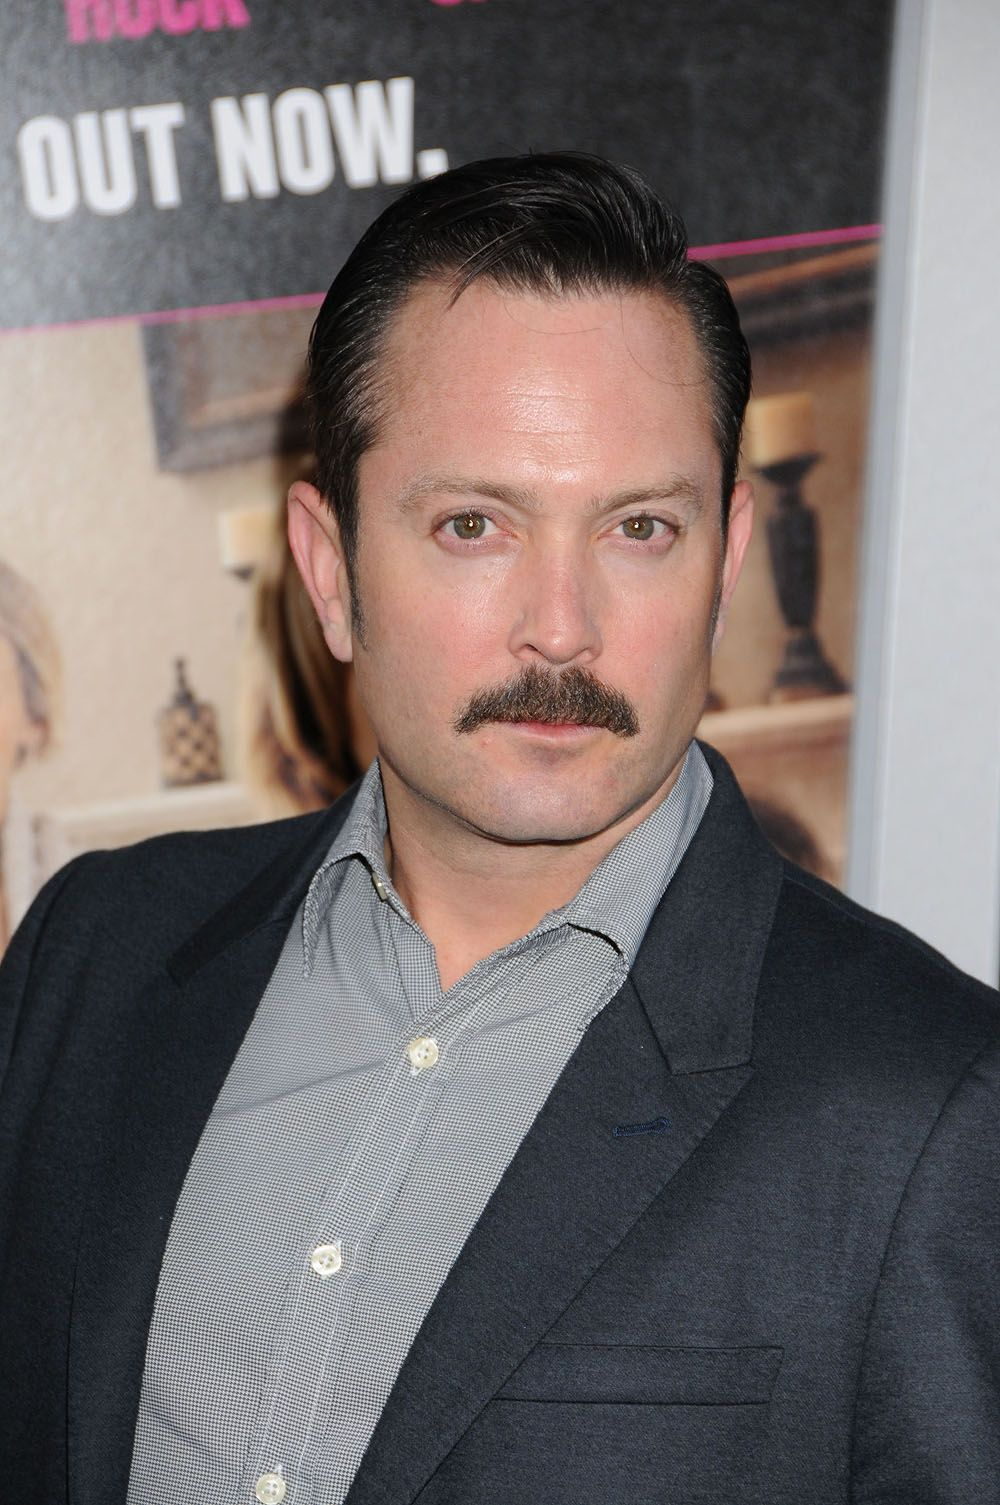 thomas lennon we re the millersthomas lennon instagram, thomas lennon leo getz, thomas lennon height, thomas lennon, thomas lennon movies, thomas lennon how i met your mother, thomas lennon night at the museum, thomas lennon friends, thomas lennon reno 911, thomas lennon twitter, thomas lennon we re the millers, thomas lennon bob burgers, thomas lennon bio, thomas lennon dark knight rises, thomas lennon facebook, thomas lennon net worth, thomas lennon wife, thomas lennon wiki, thomas lennon odd couple, thomas lennon shirtless